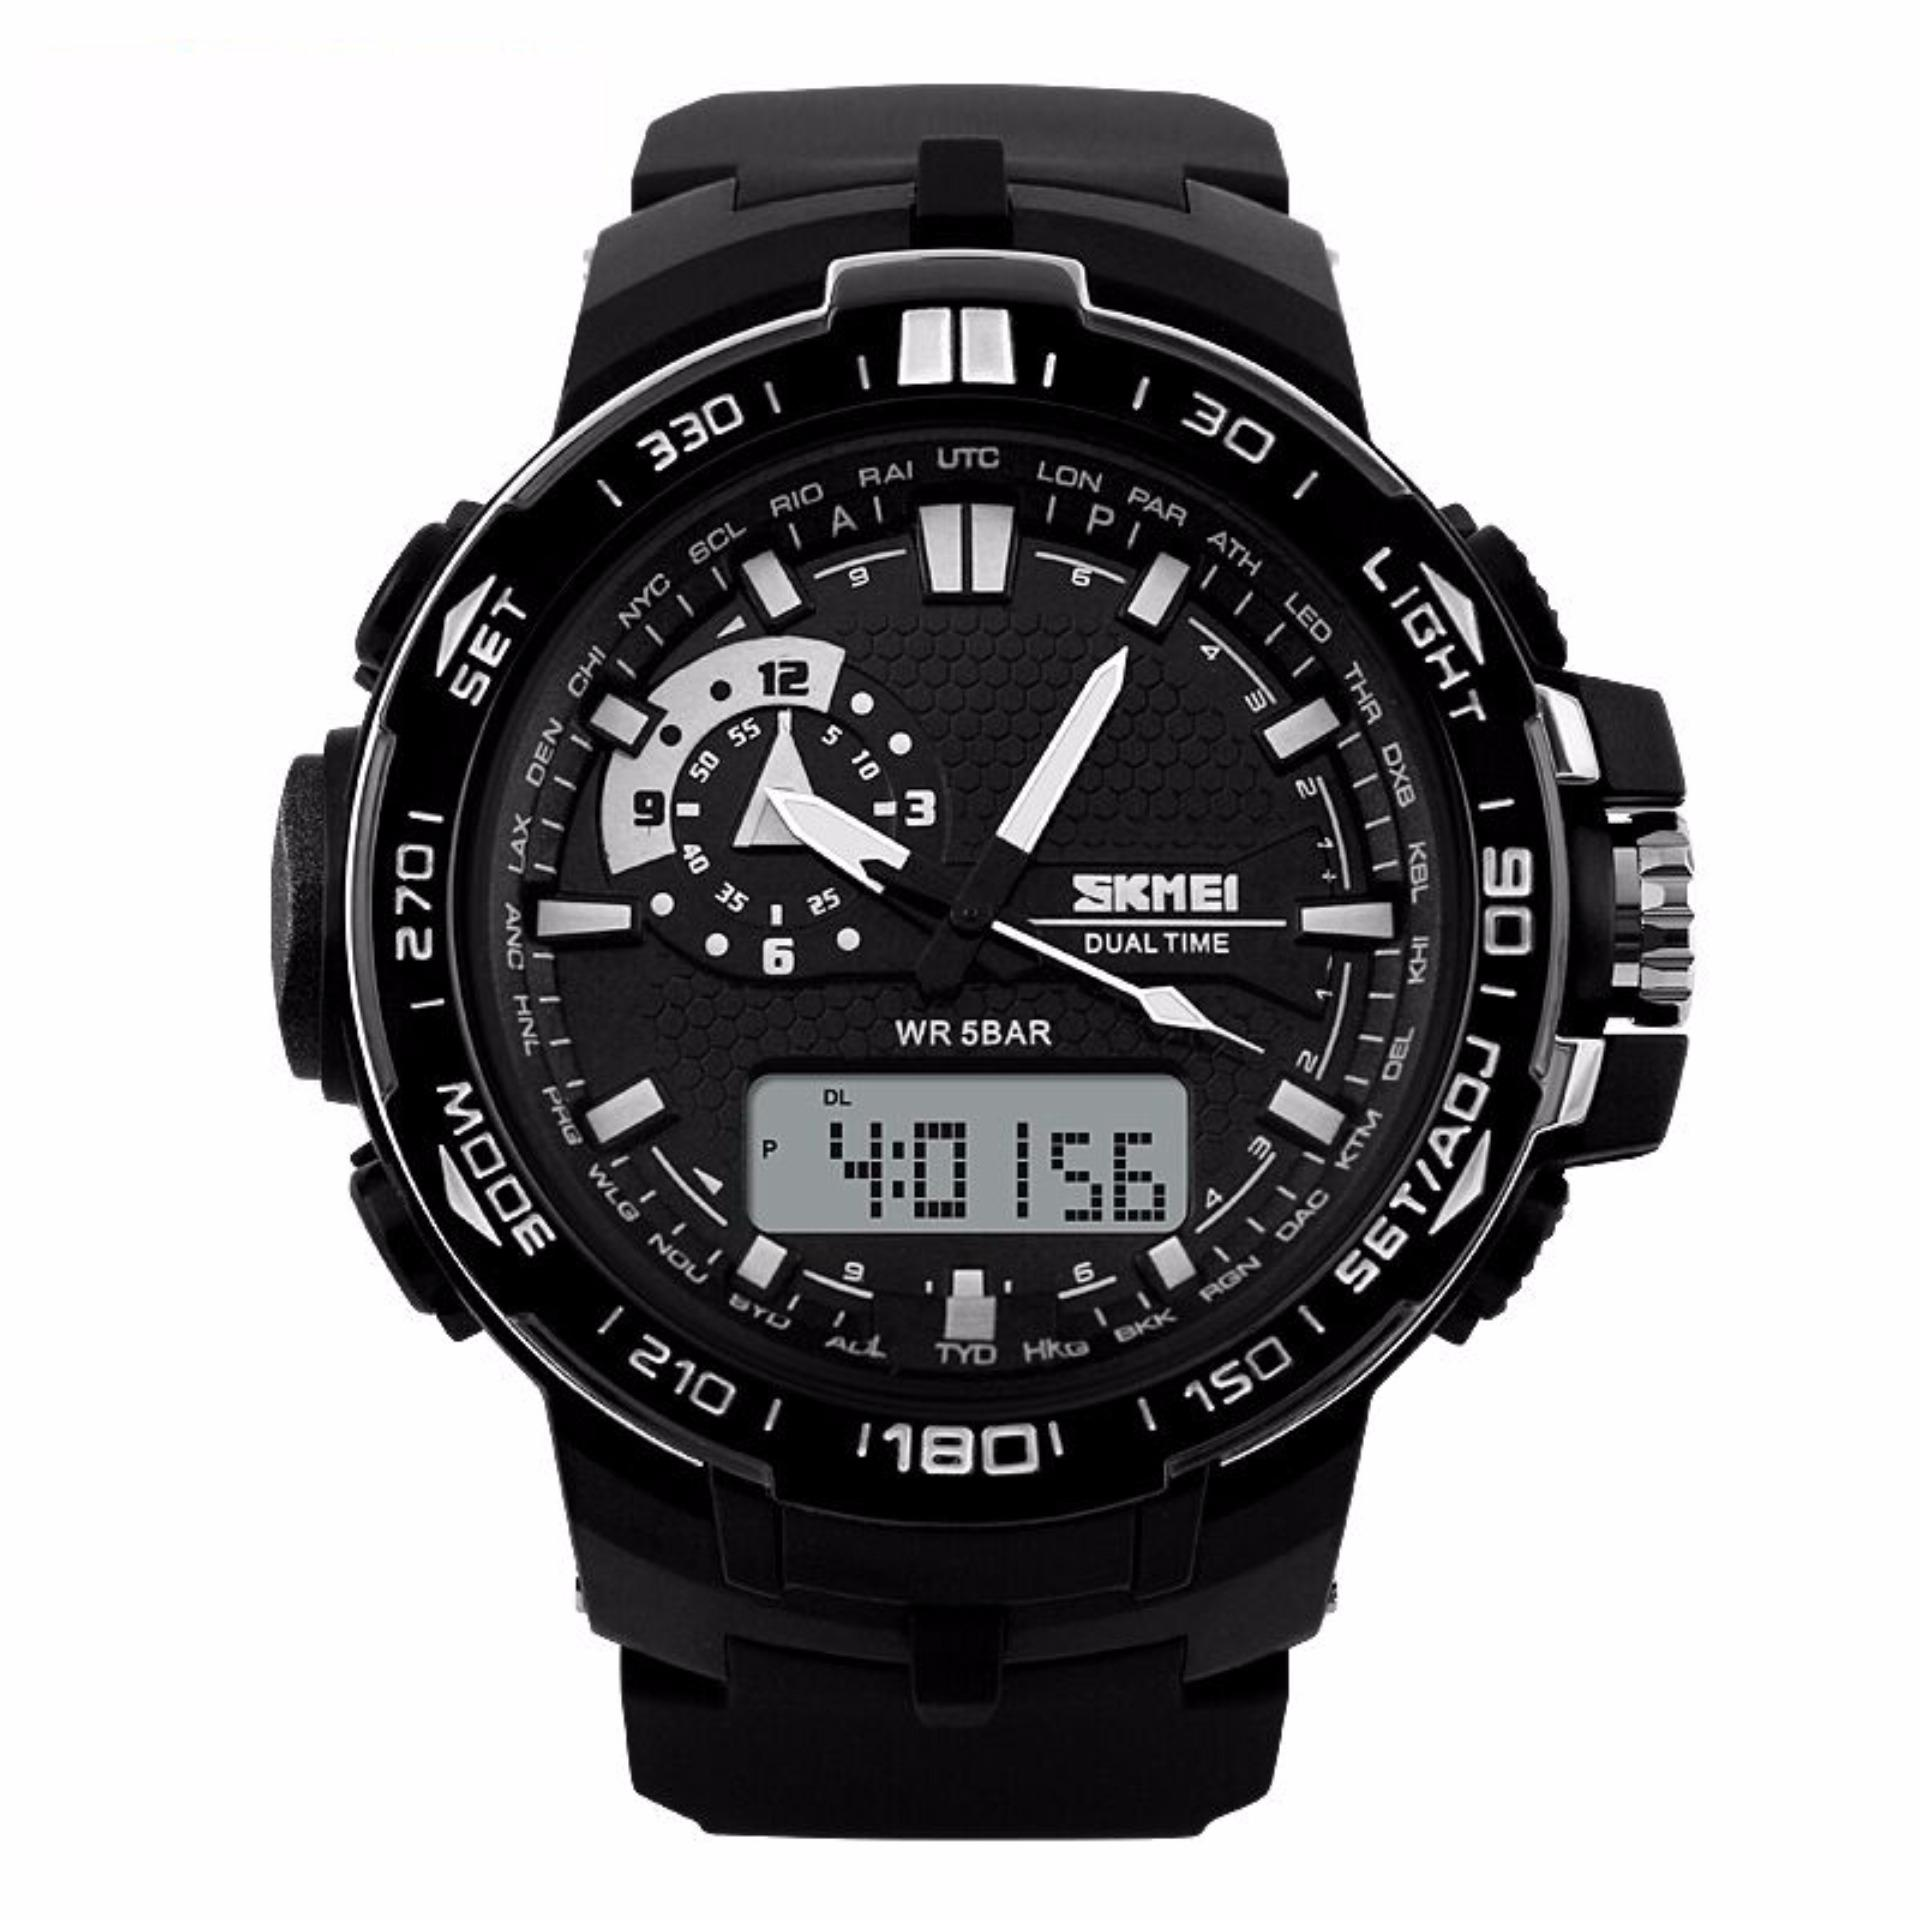 SKMEI Casio Men Sport LED Watch Jam Tangan Sport Water Resistant 50m AD1081 - Hitam Putih